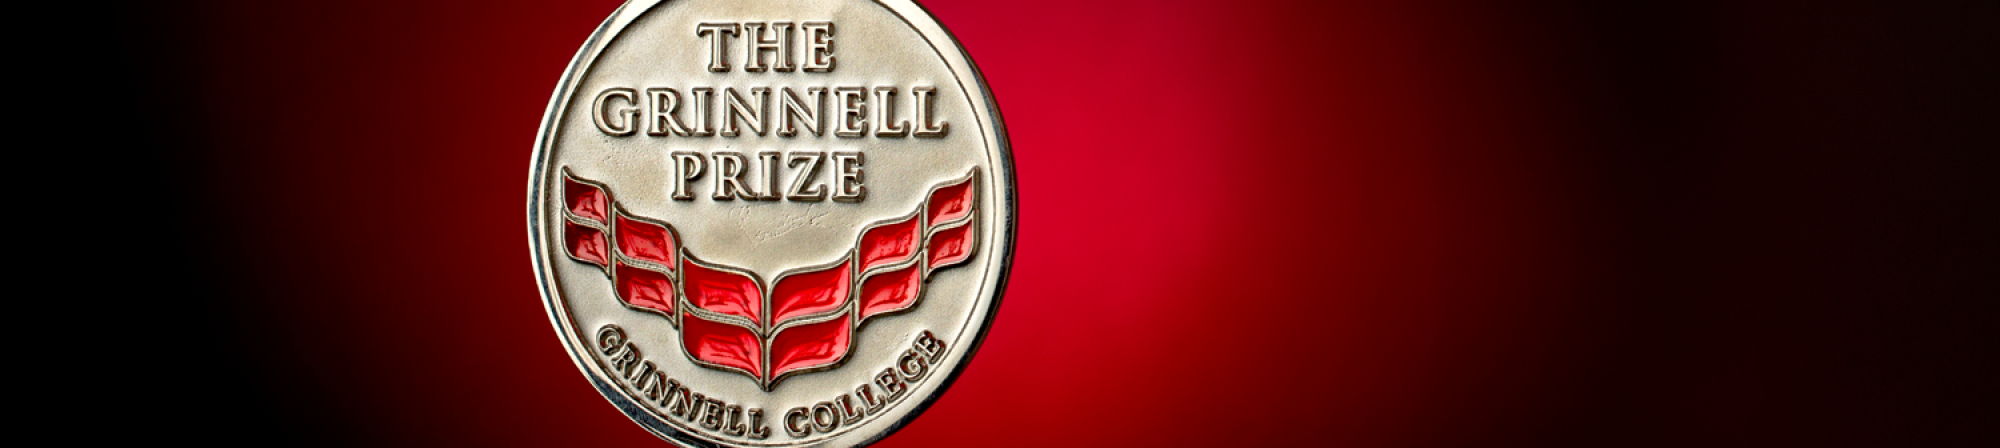 Grinnell Prize medal